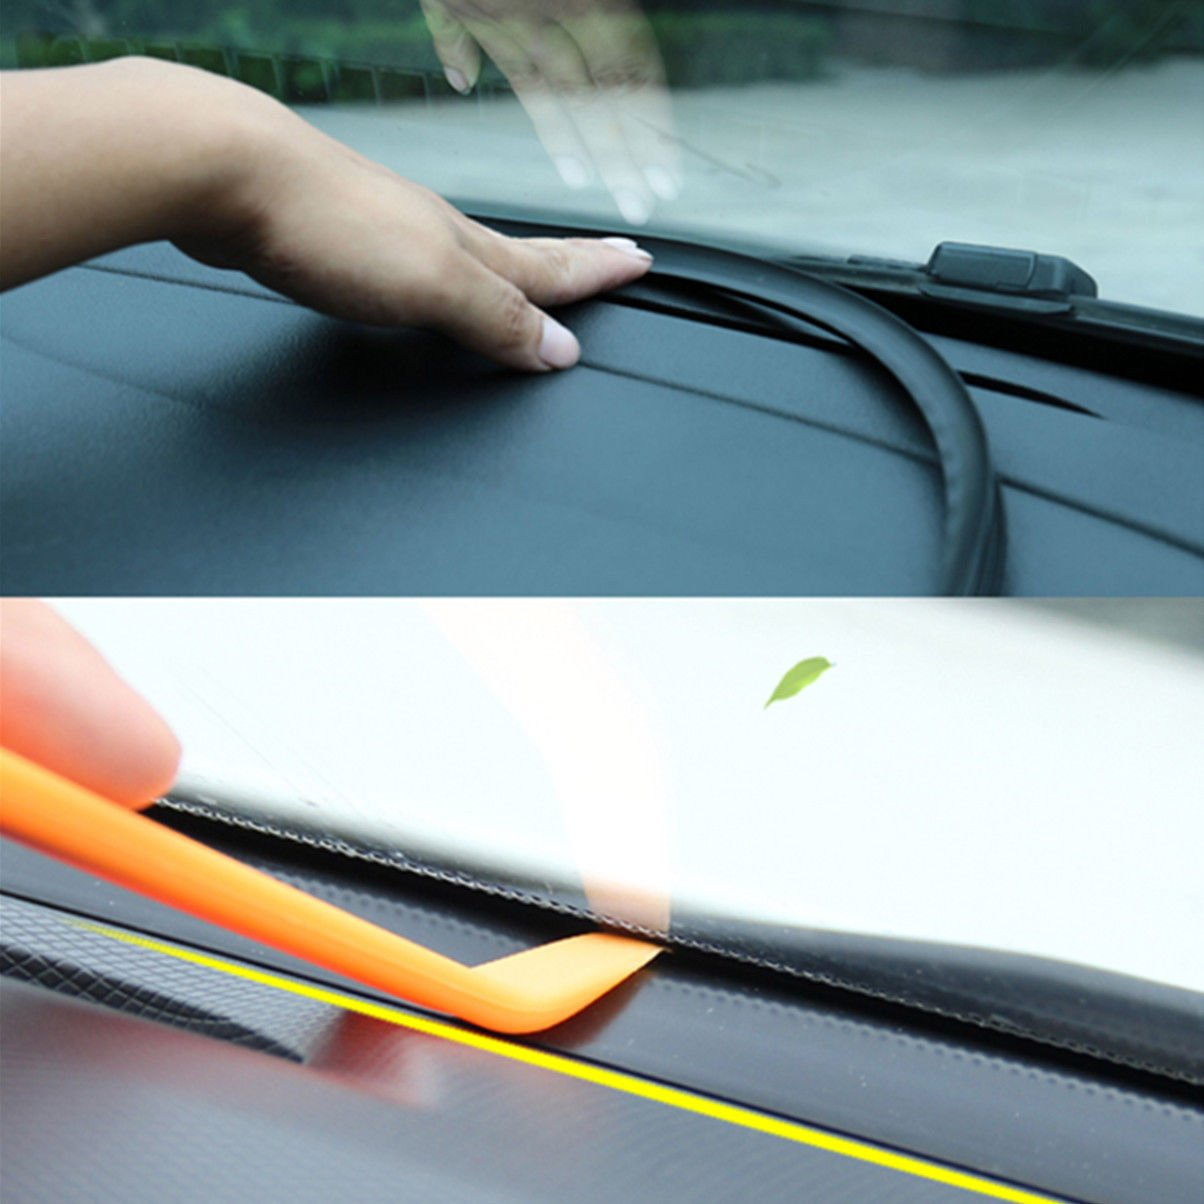 Car Dashboard Sealing Strips Styling Stickers Universal Car Interior Accessoriessss.